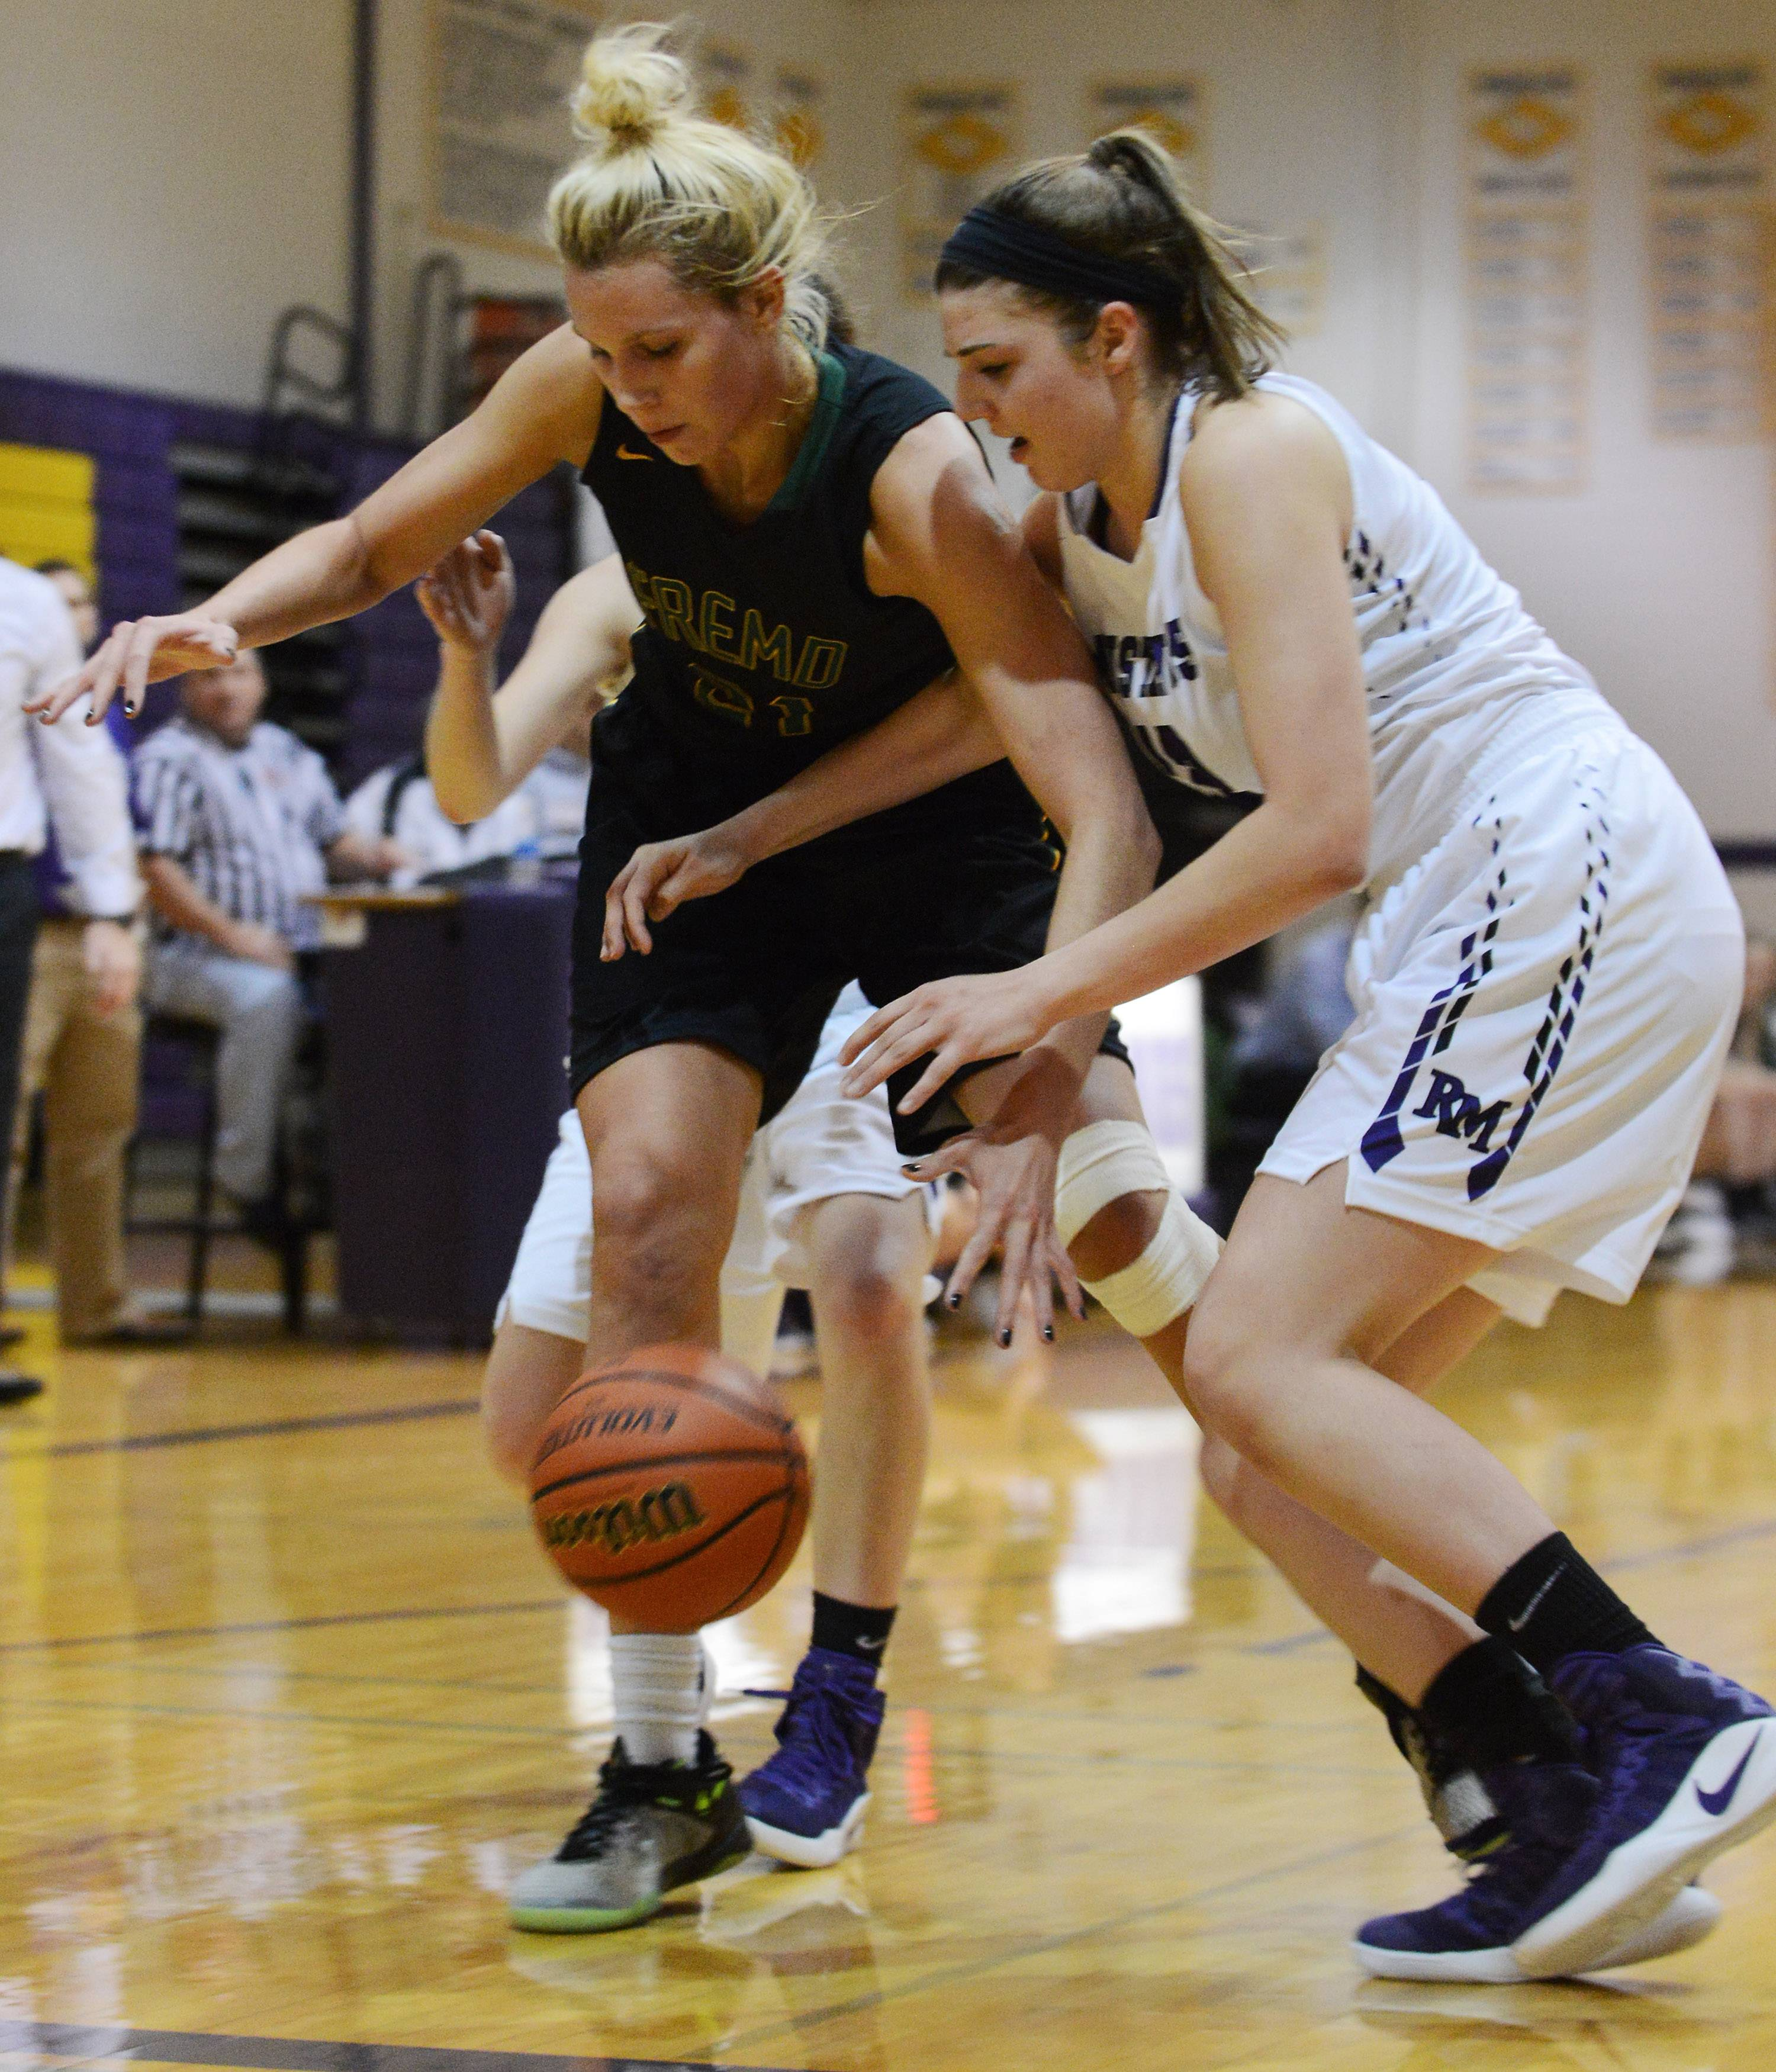 Fremd's Grace Tworek, left, and Rolling Meadows' Morgan Campagna chase a loose ball Tuesday.